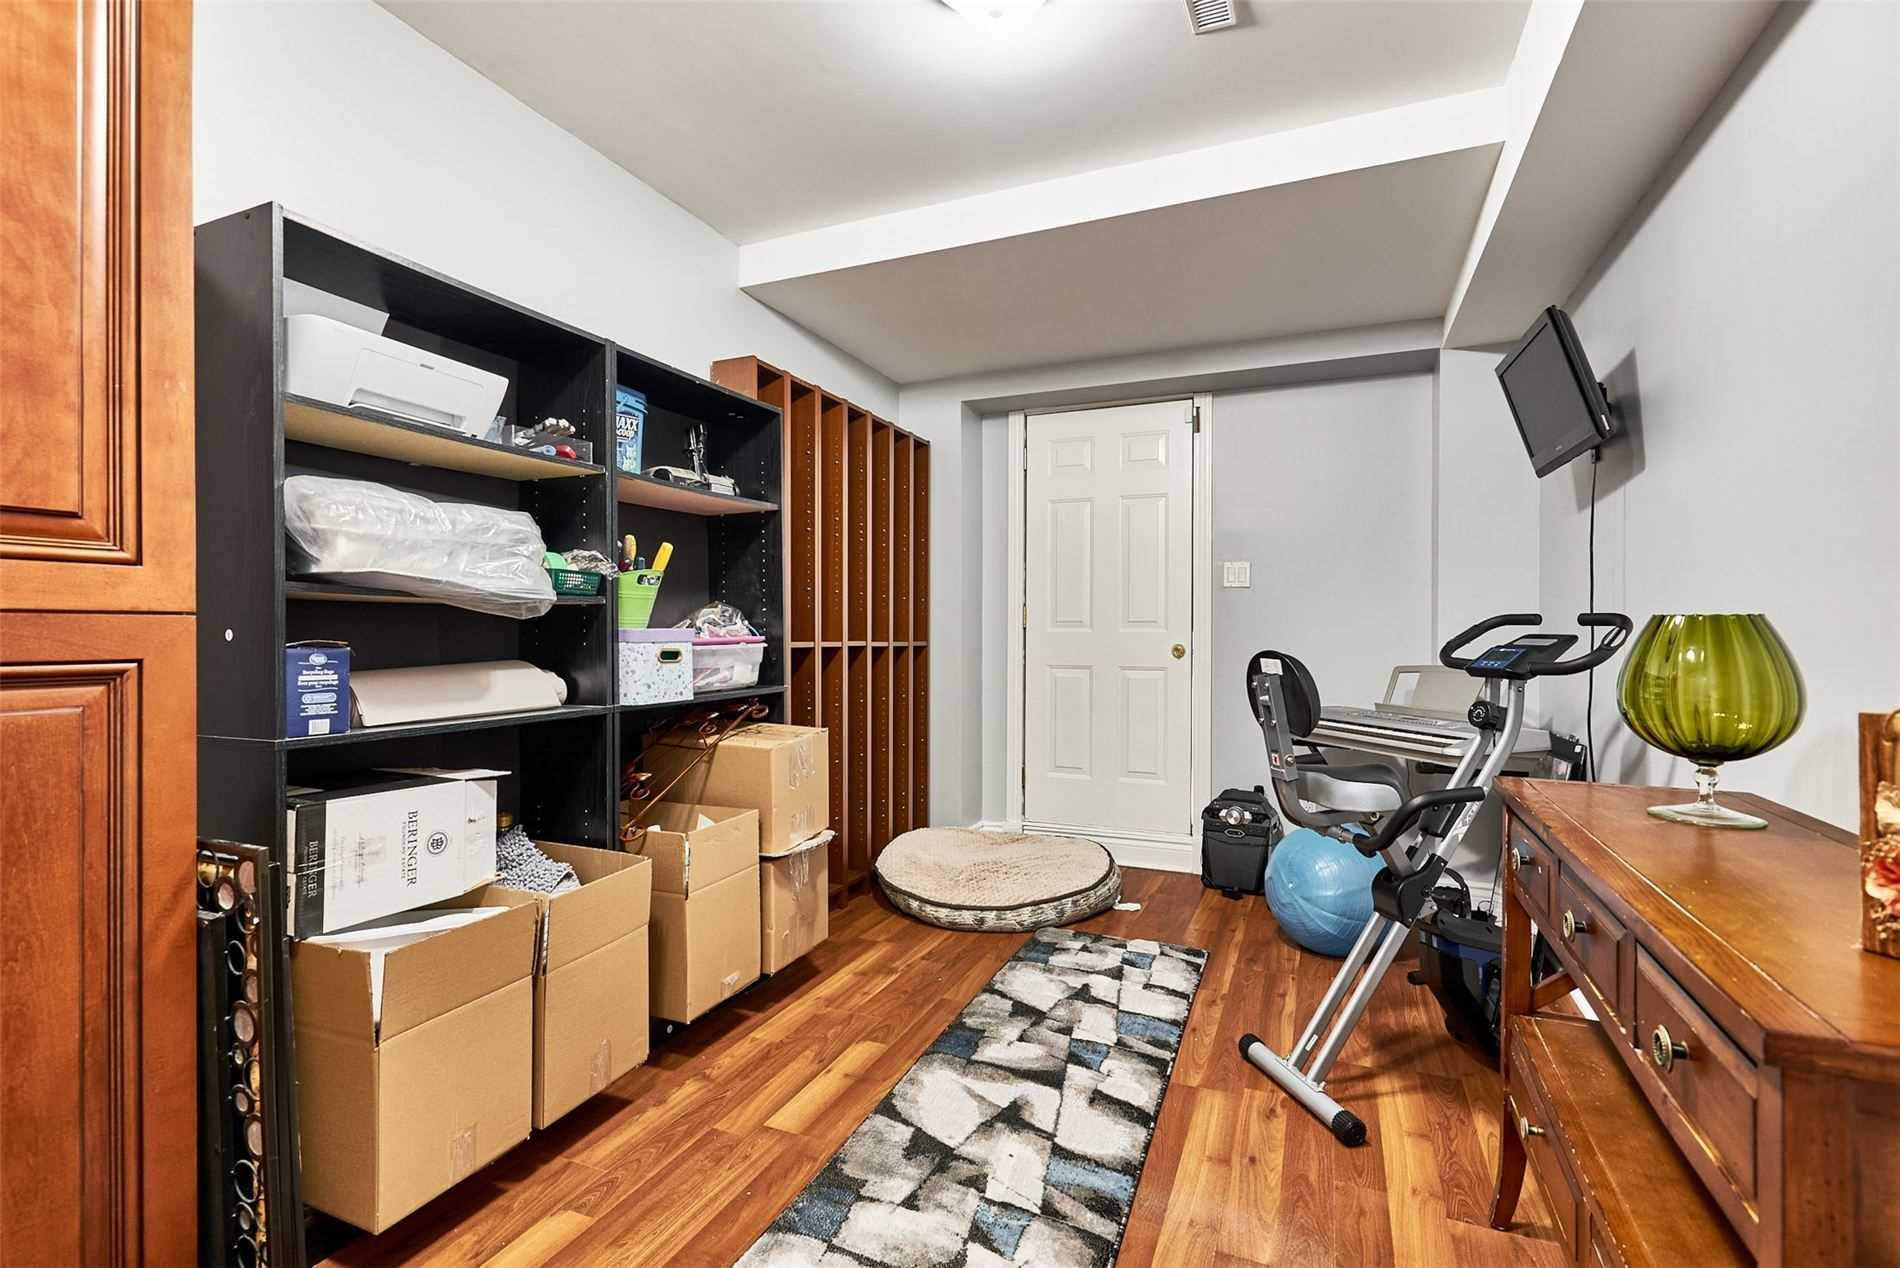 Image 19 of 33 showing inside of 3 Bedroom Condo Townhouse 2-Storey for Sale at 33 Clover Ridge Dr W Unit# 9, Ajax L1S3M5